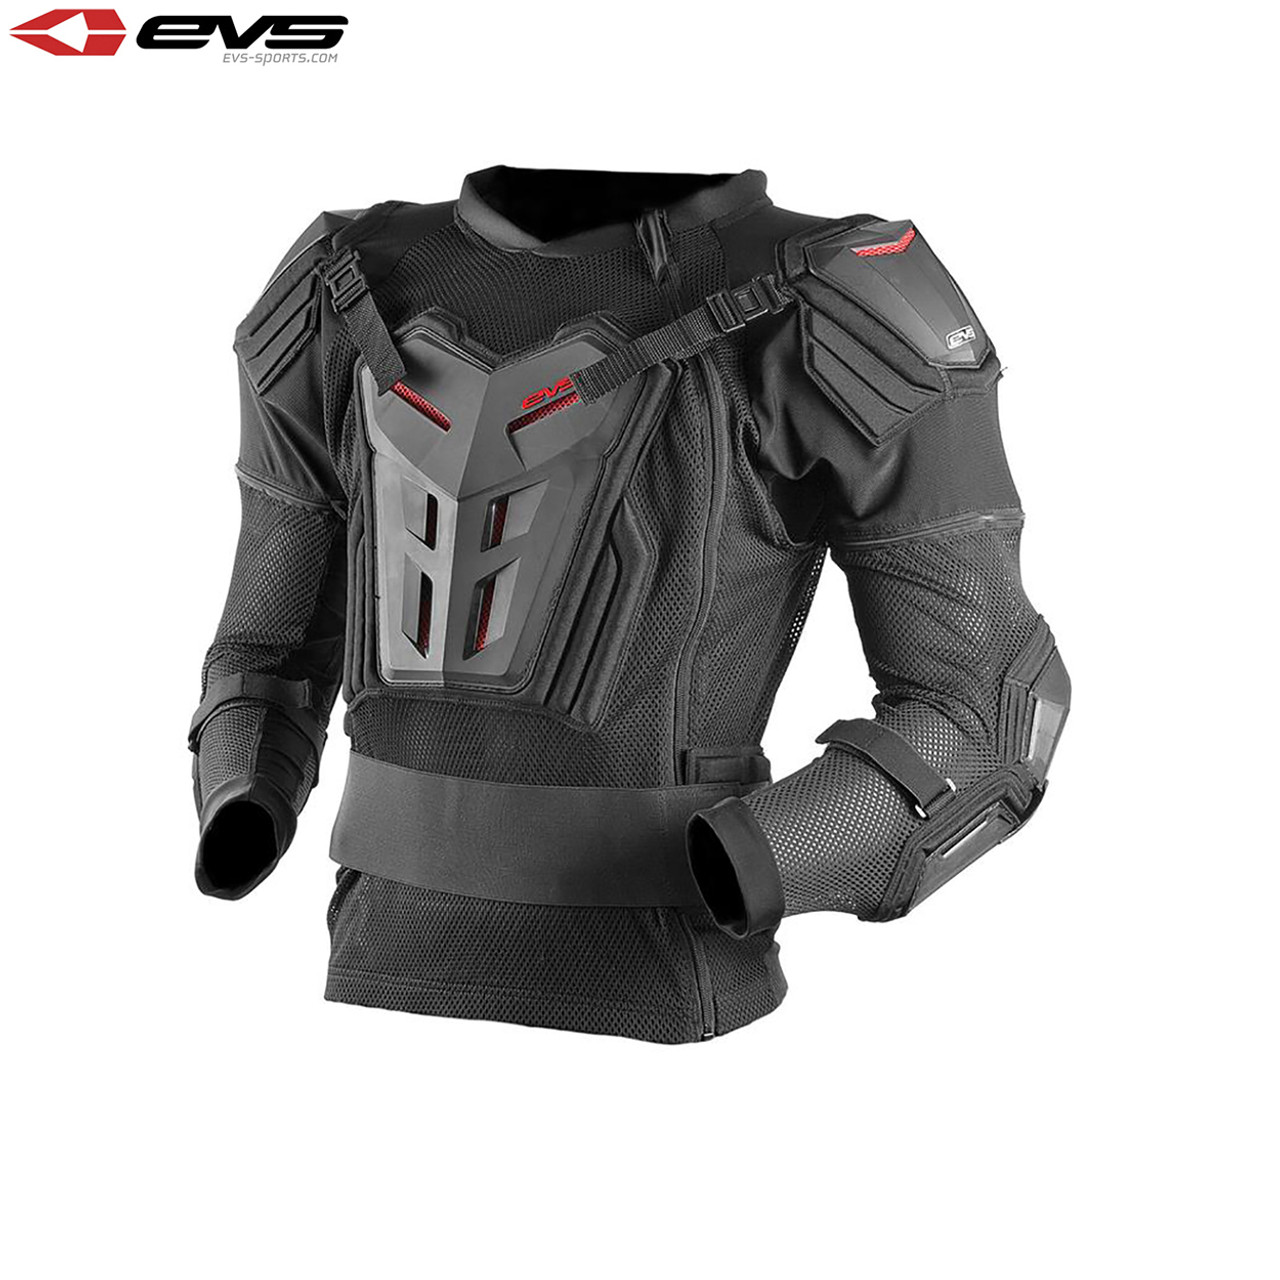 EVS COMP SUIT MOTORCYCLE STREET RIDING CHEST SPINE PROTECTOR BALLISTIC NEW 2014